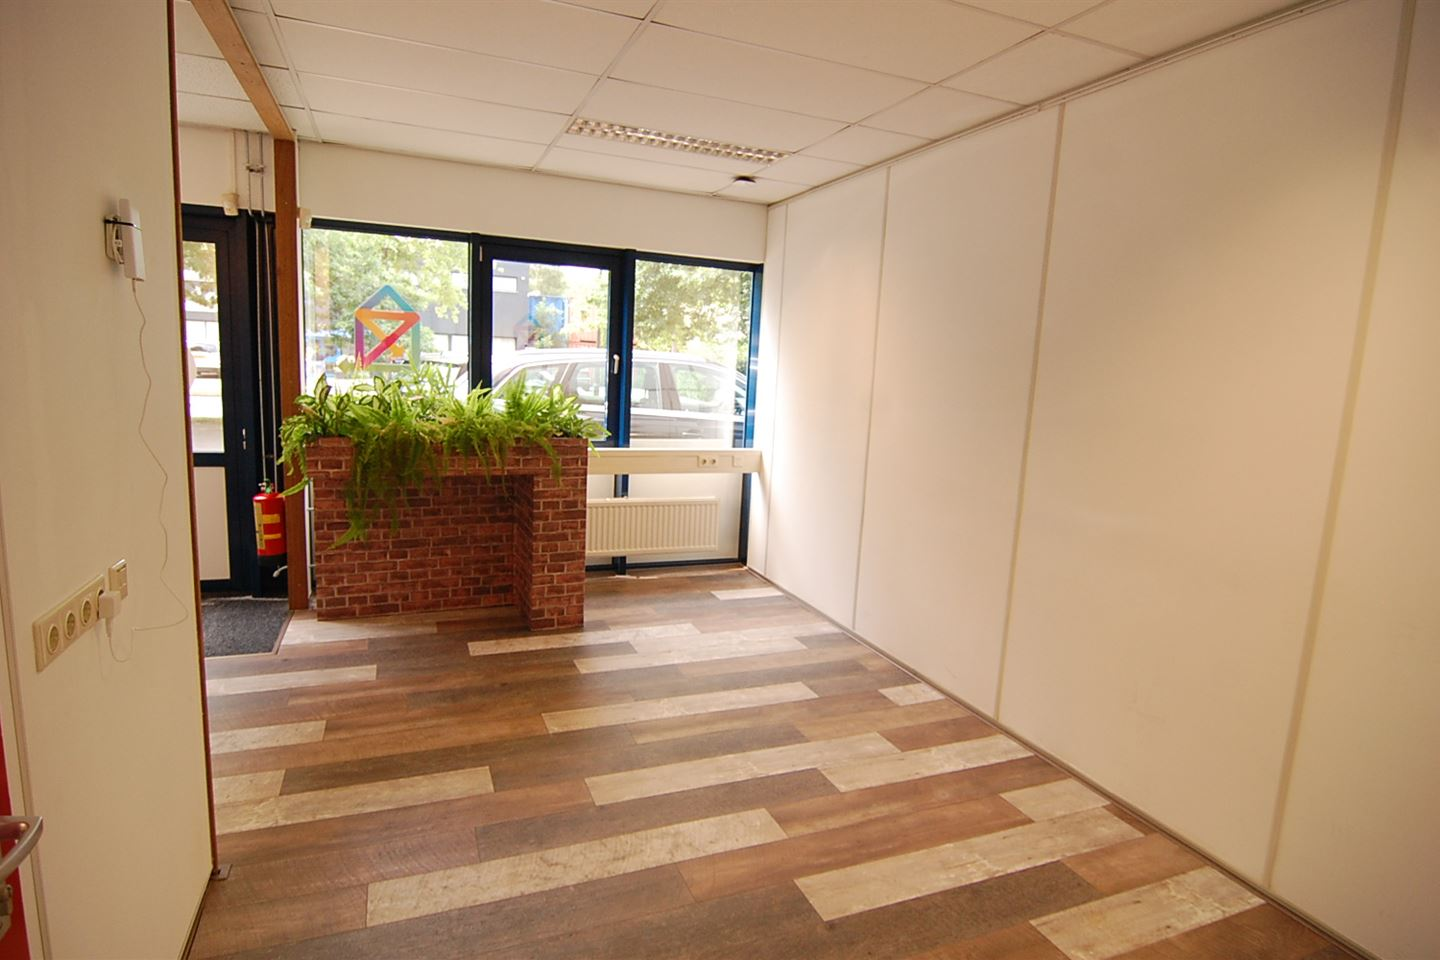 View photo 3 of Wilmersdorf 9 A